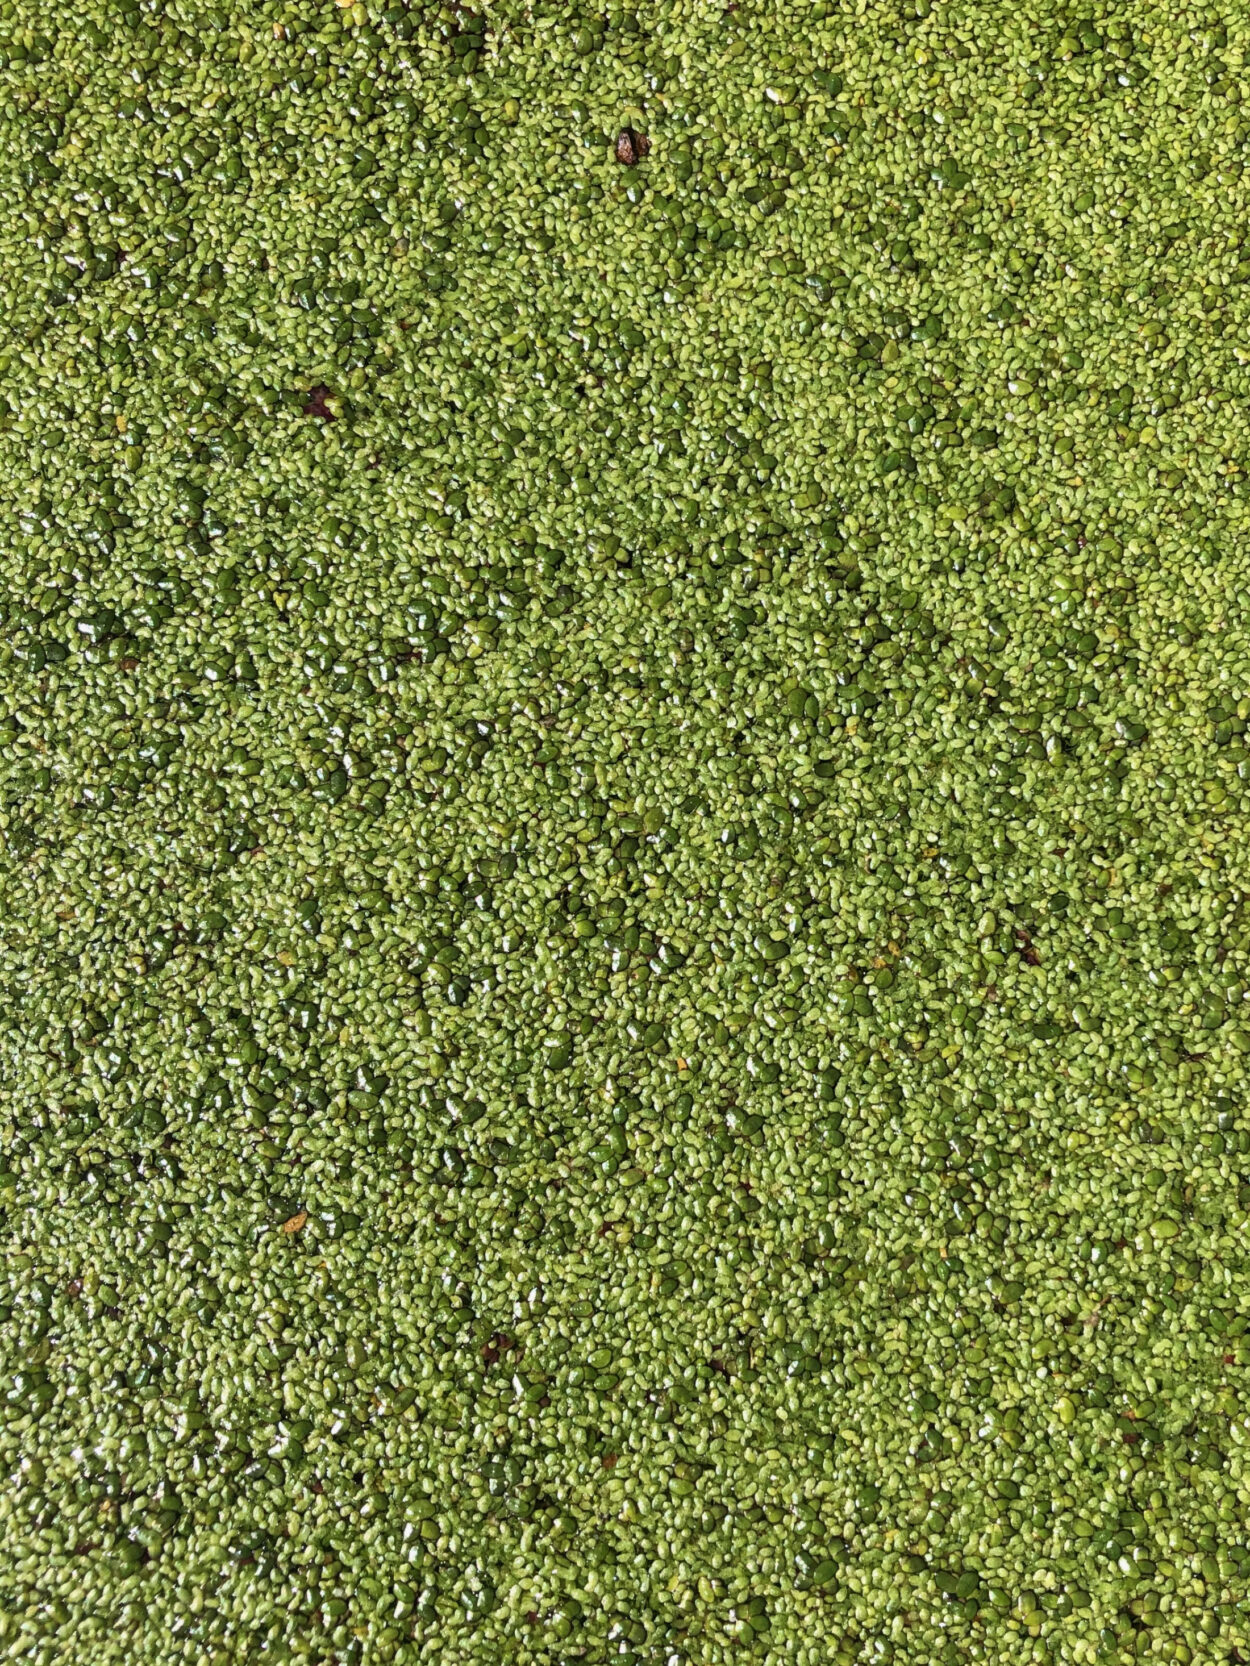 Duckweed covering the surface of a pond